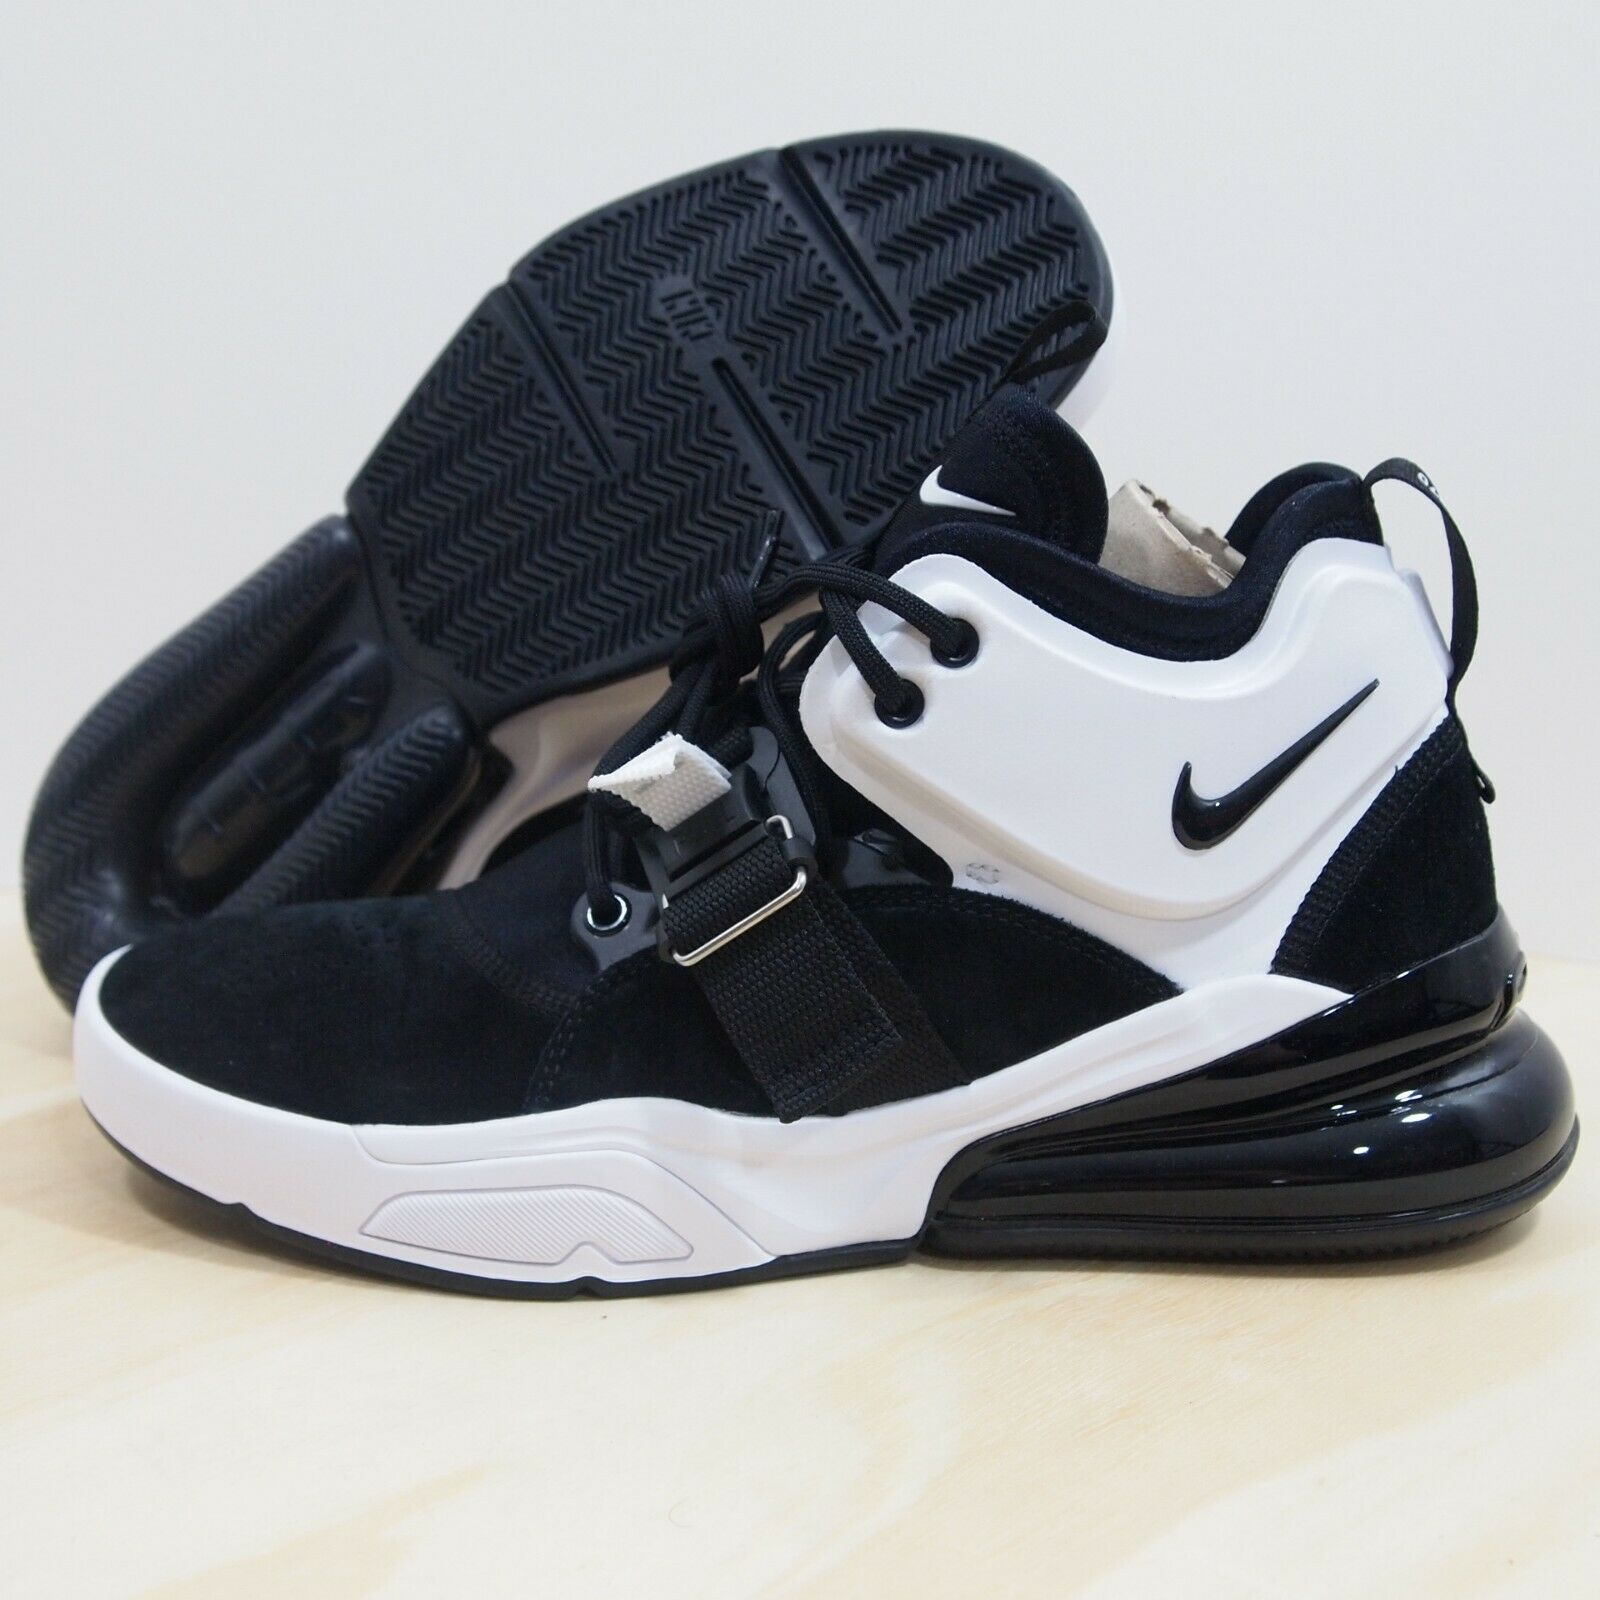 Nike Air Force 270 Men's Size 9 Black White AH6772-006